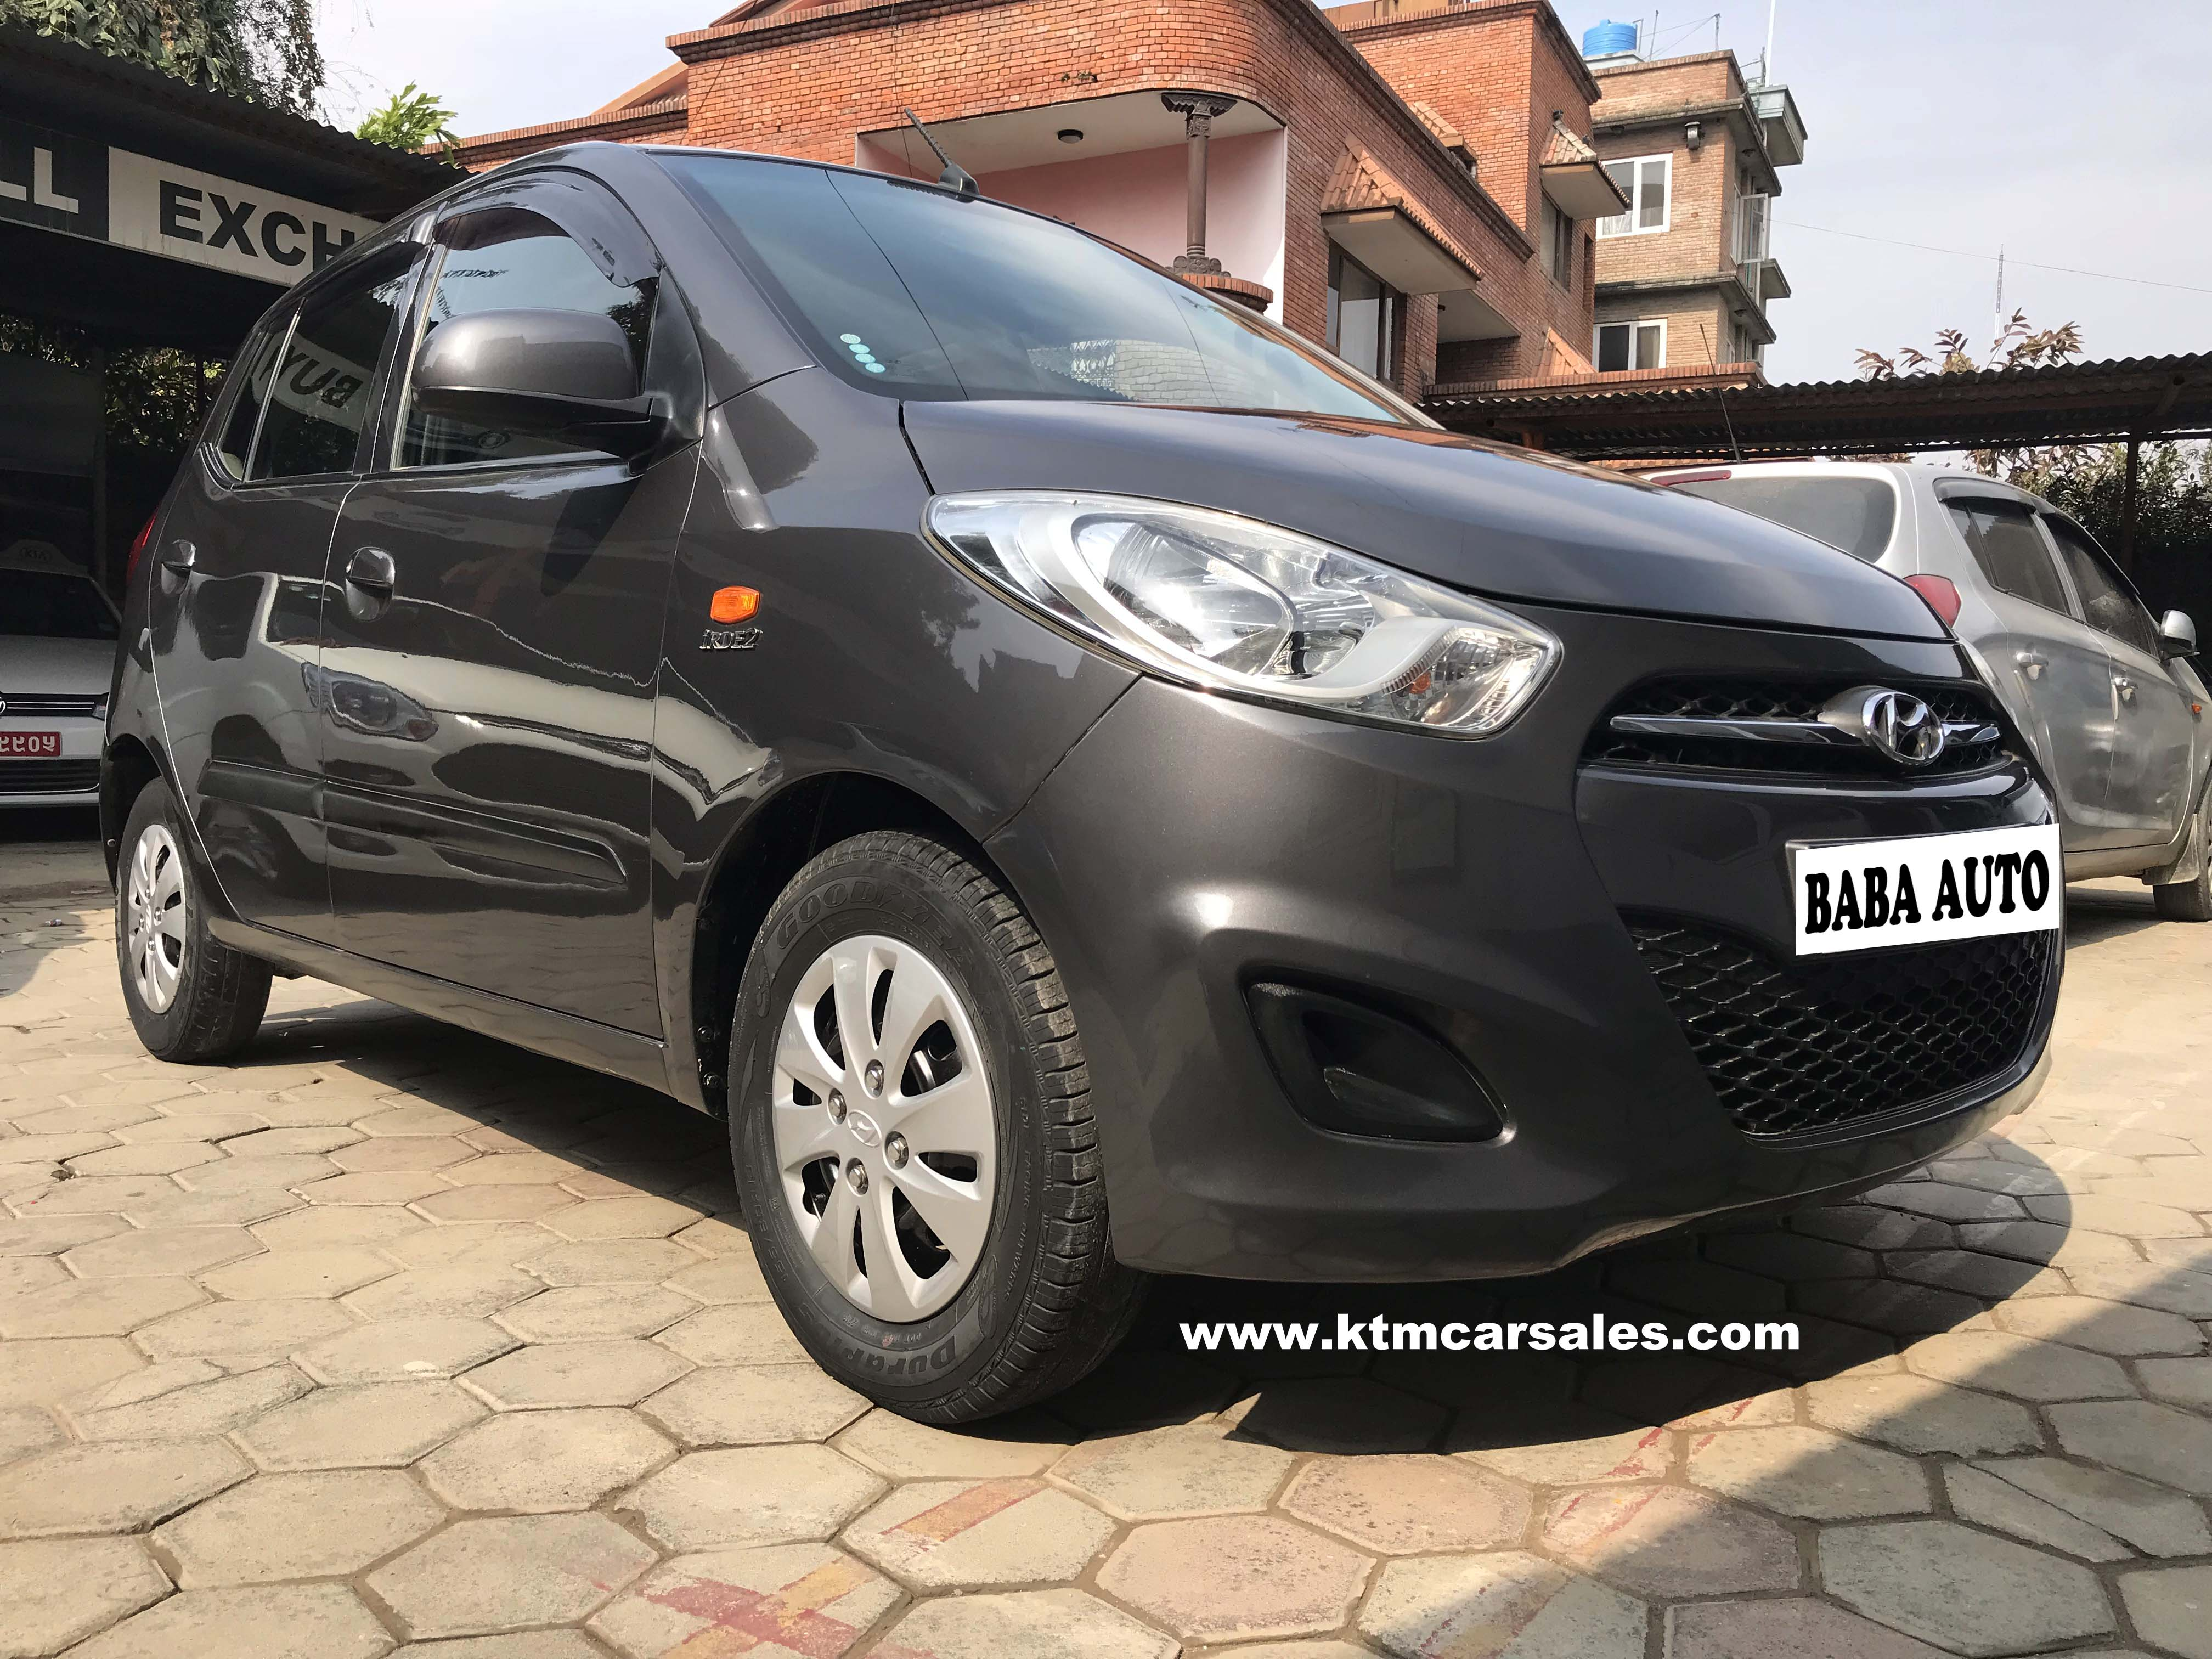 Cheap Second Hand Cars for Sale New Ktmcarsales Sell Cars In Kathmandu Nepal Best Price Second Hand